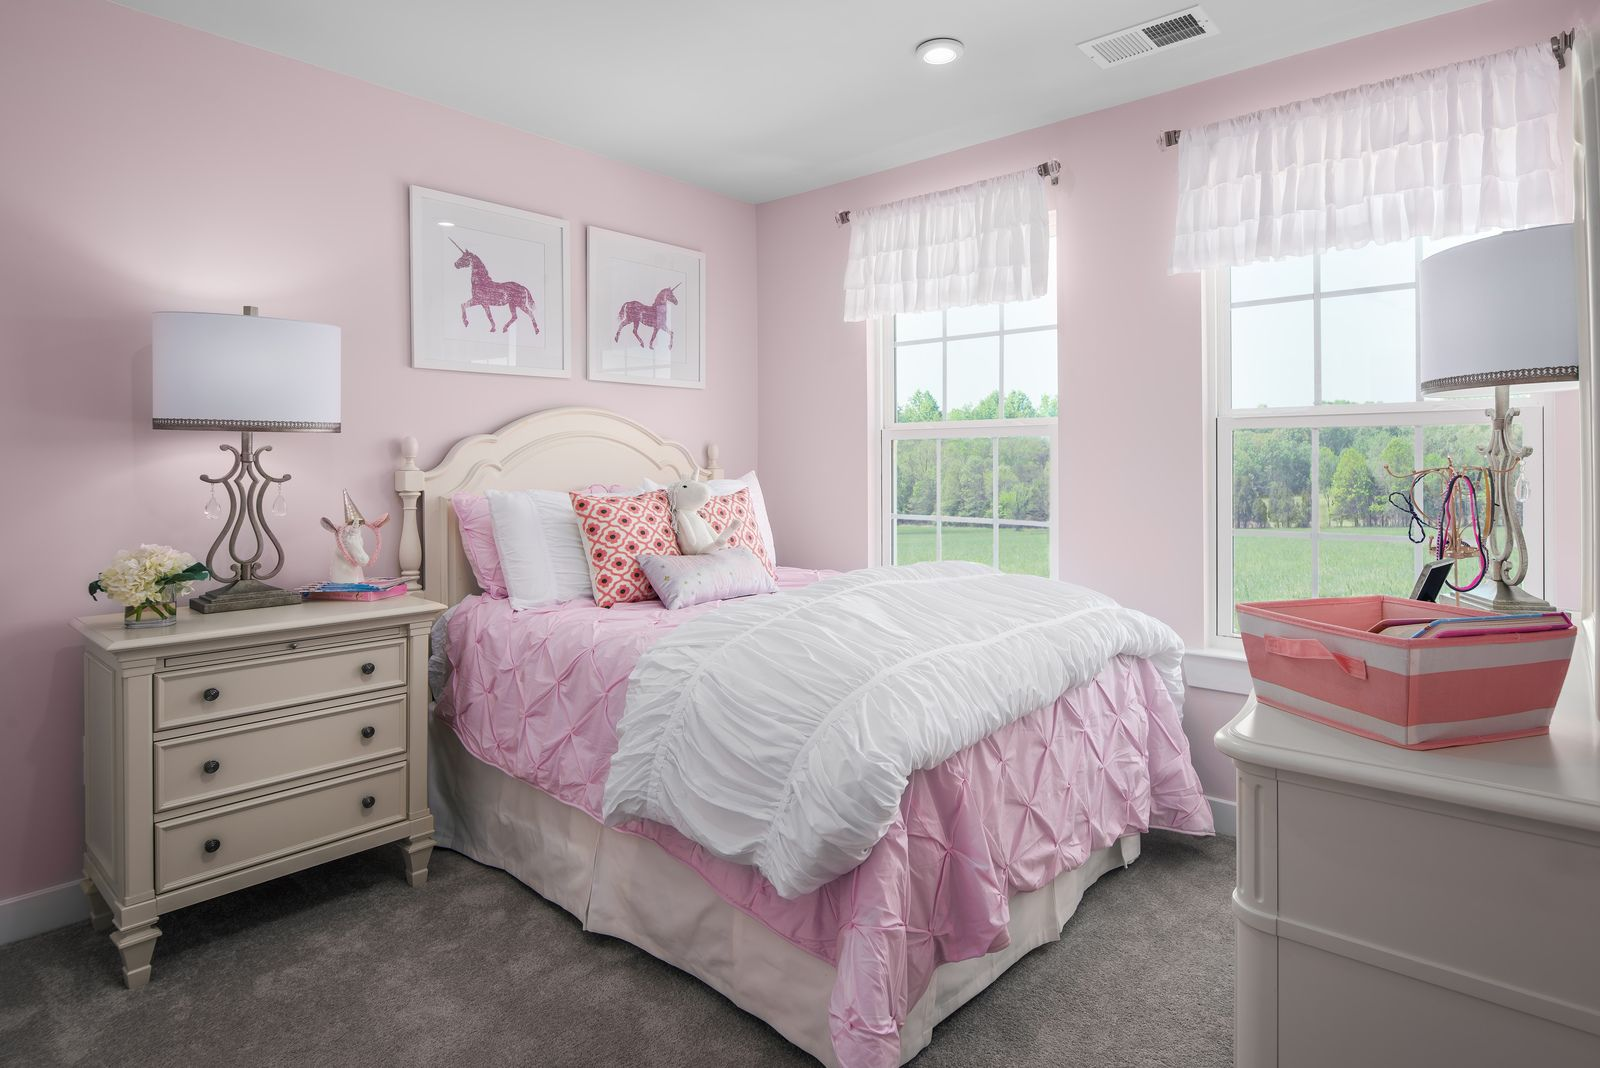 Bedroom featured in the Mendelssohn By Ryan Homes in Charlotte, NC